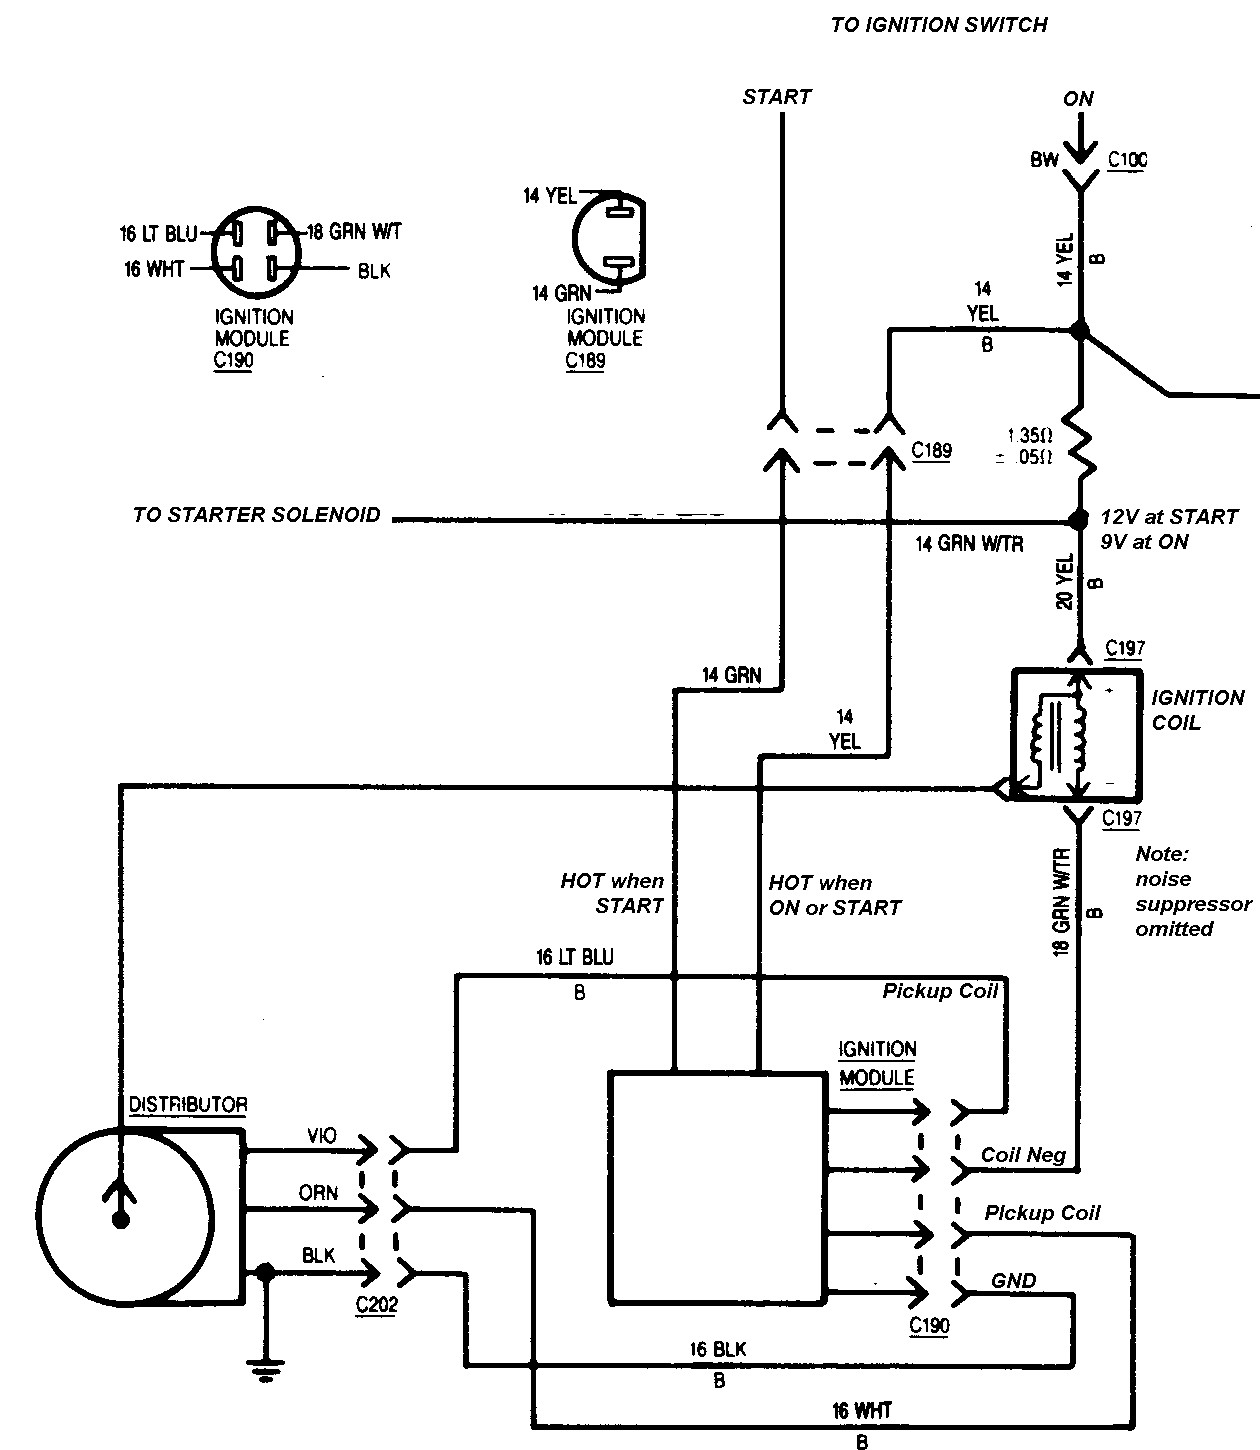 Gm Ignition Module Wiring Diagram